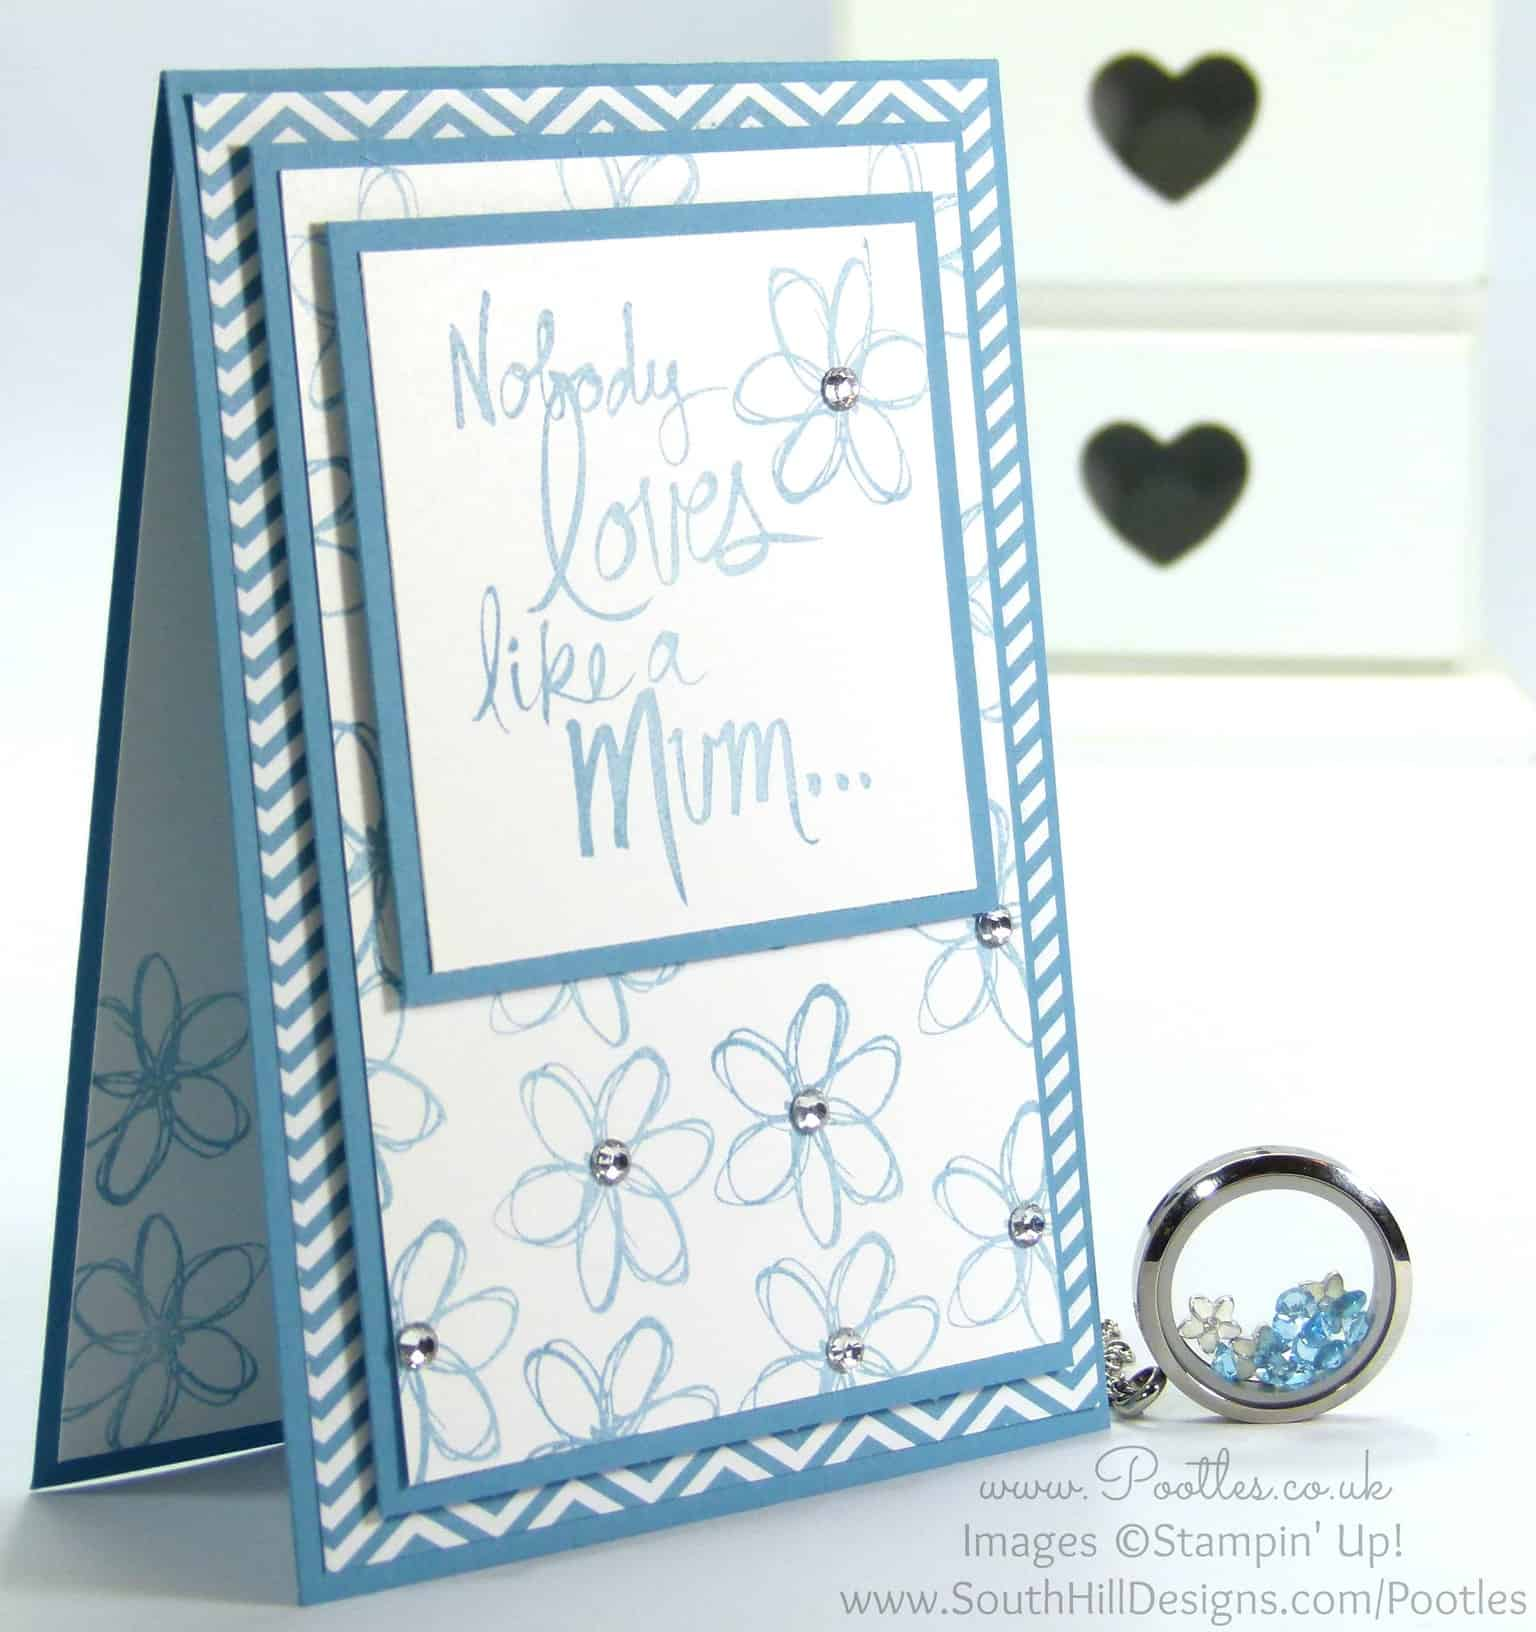 South Hill Designs & Stampin' Up! Sunday Mother's Day Card & Locket Tutorial